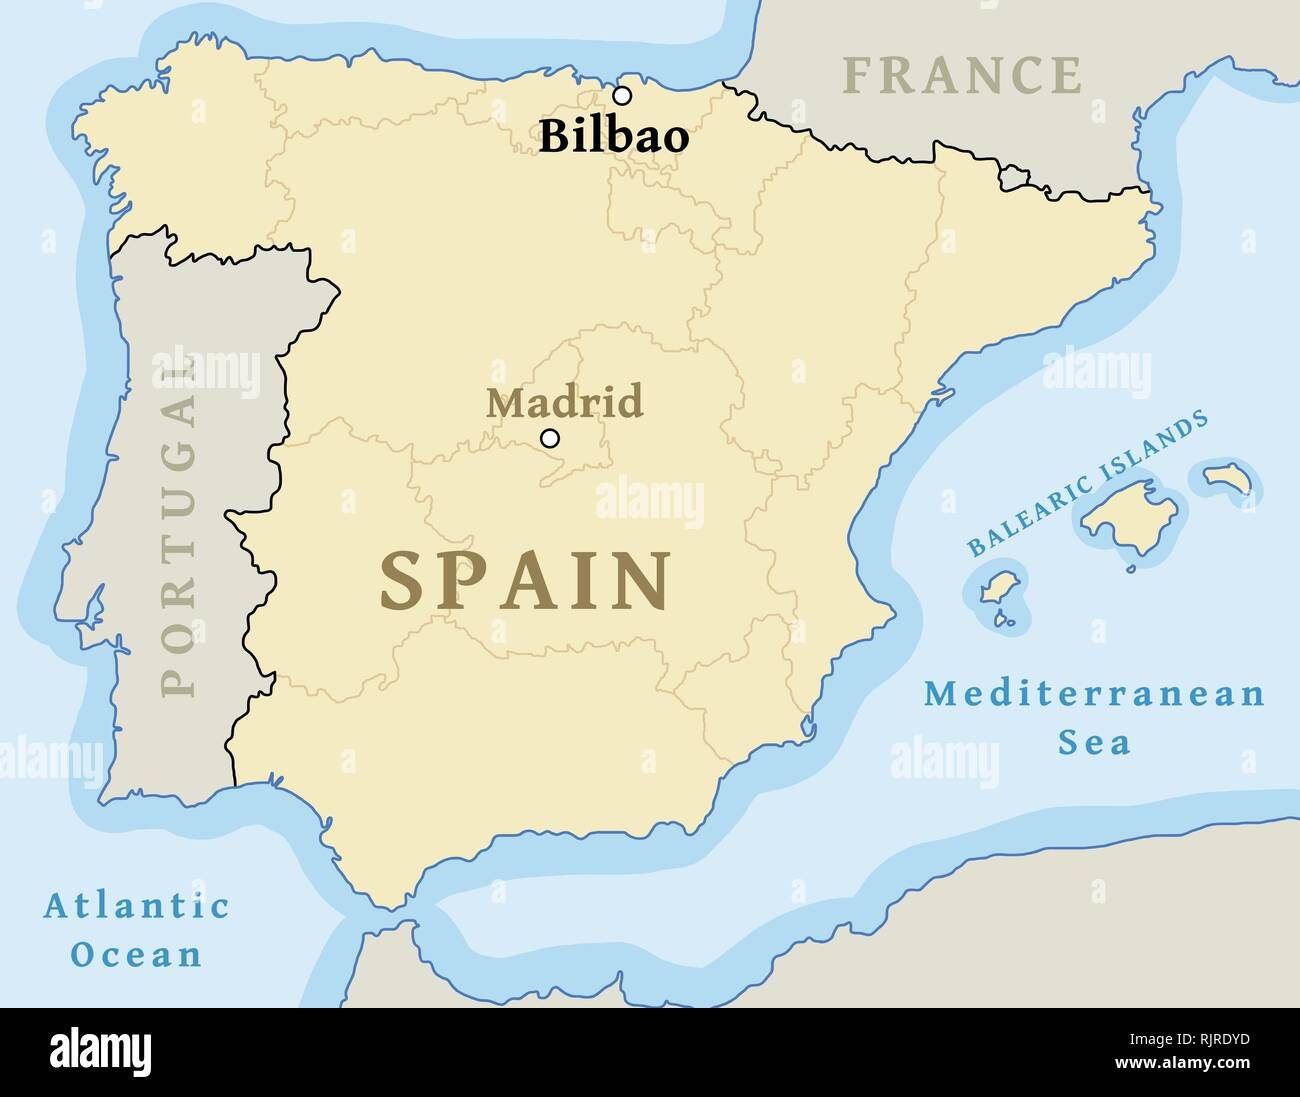 Image of: Bilbao Map High Resolution Stock Photography And Images Alamy